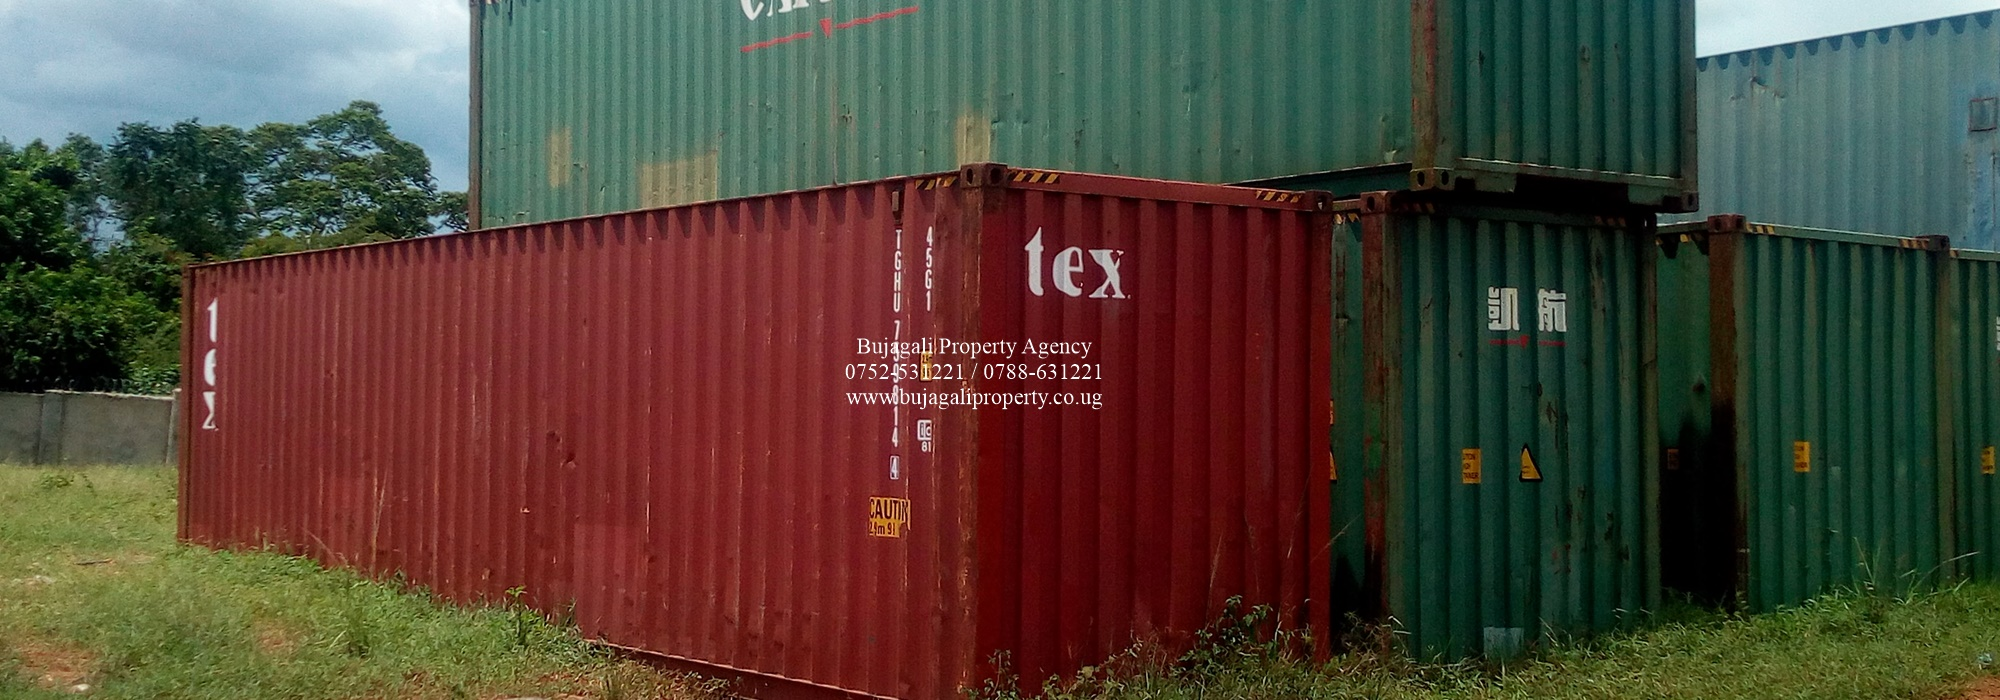 40FT PRIVATE STANDARD CONTAINER FOR SALE